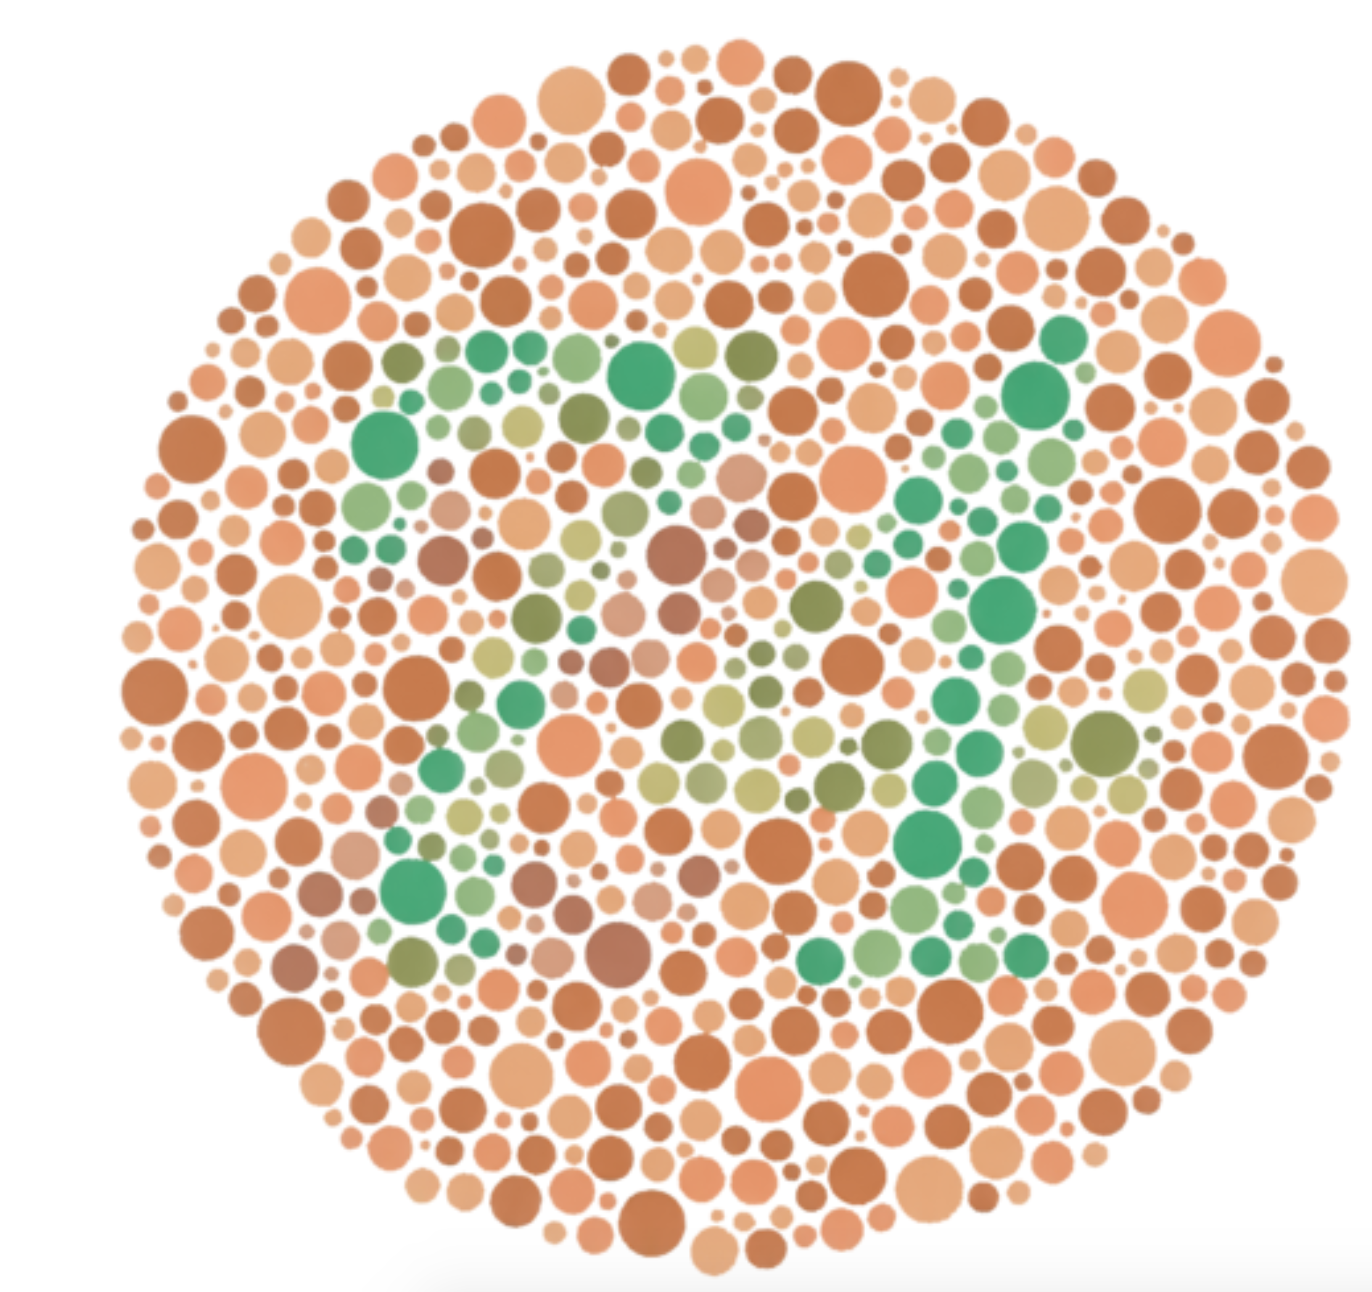 Ishihara red-green color blindness test showing the number 74